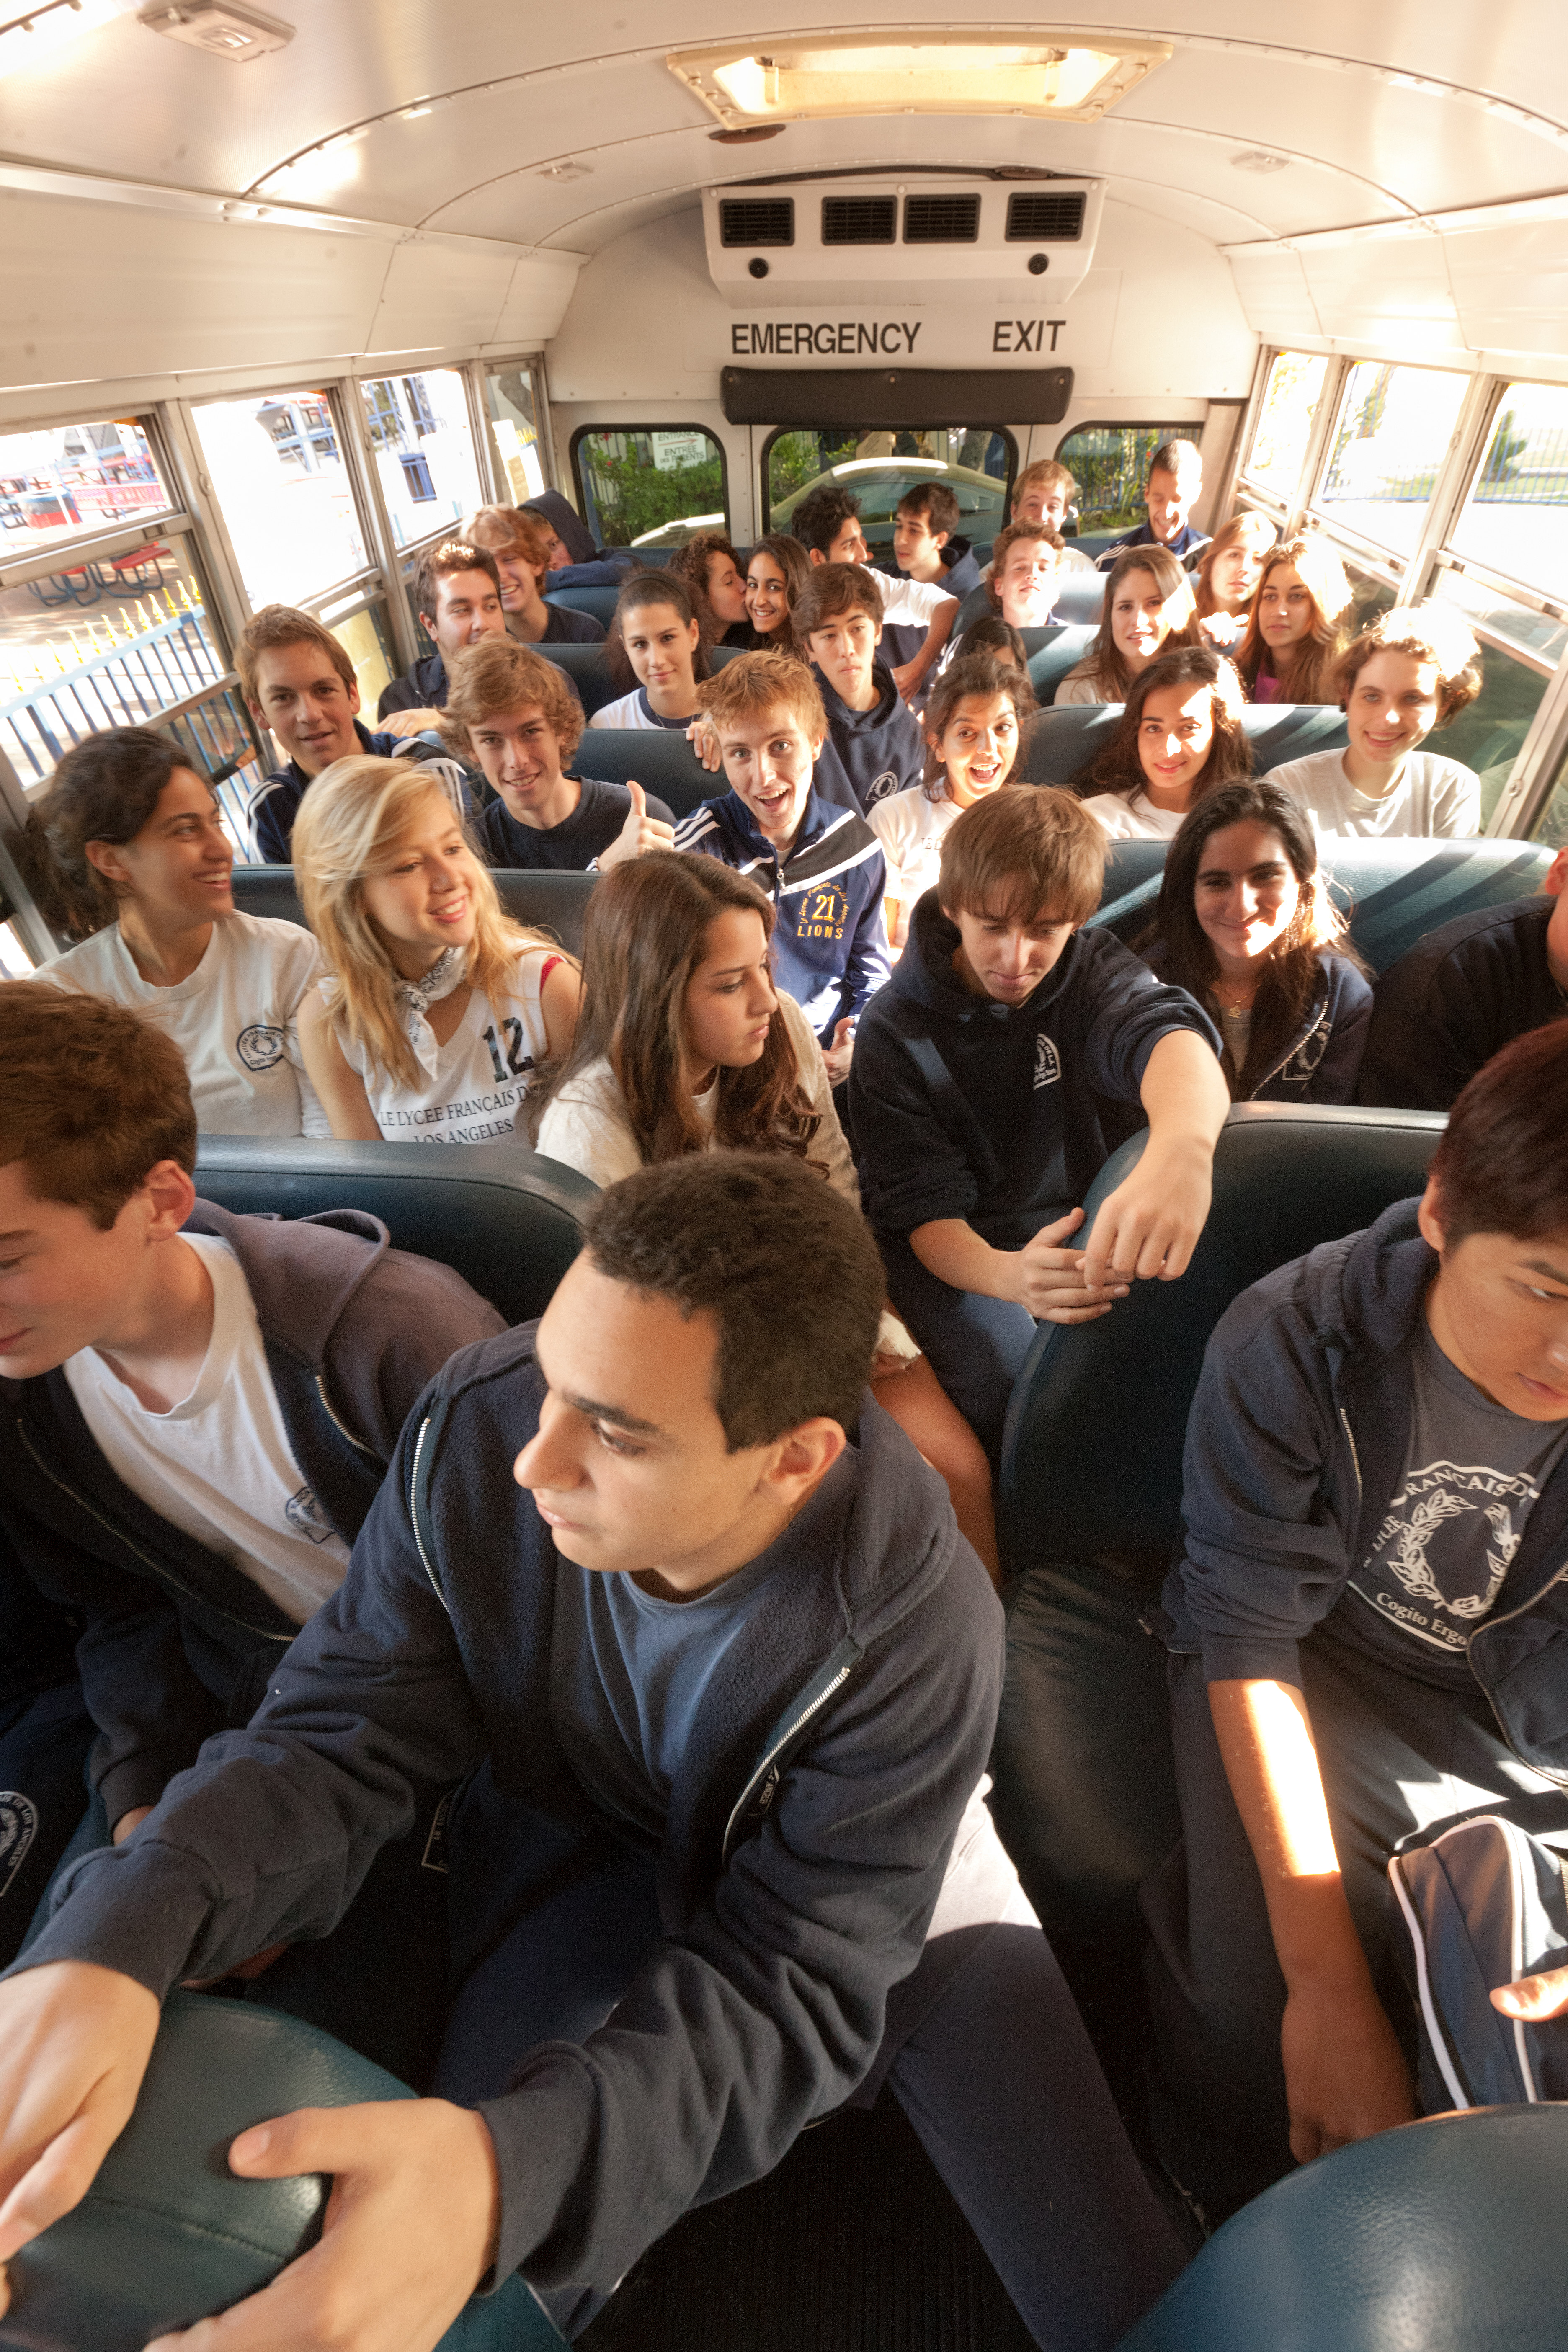 High school students inside a school bus going on a trip